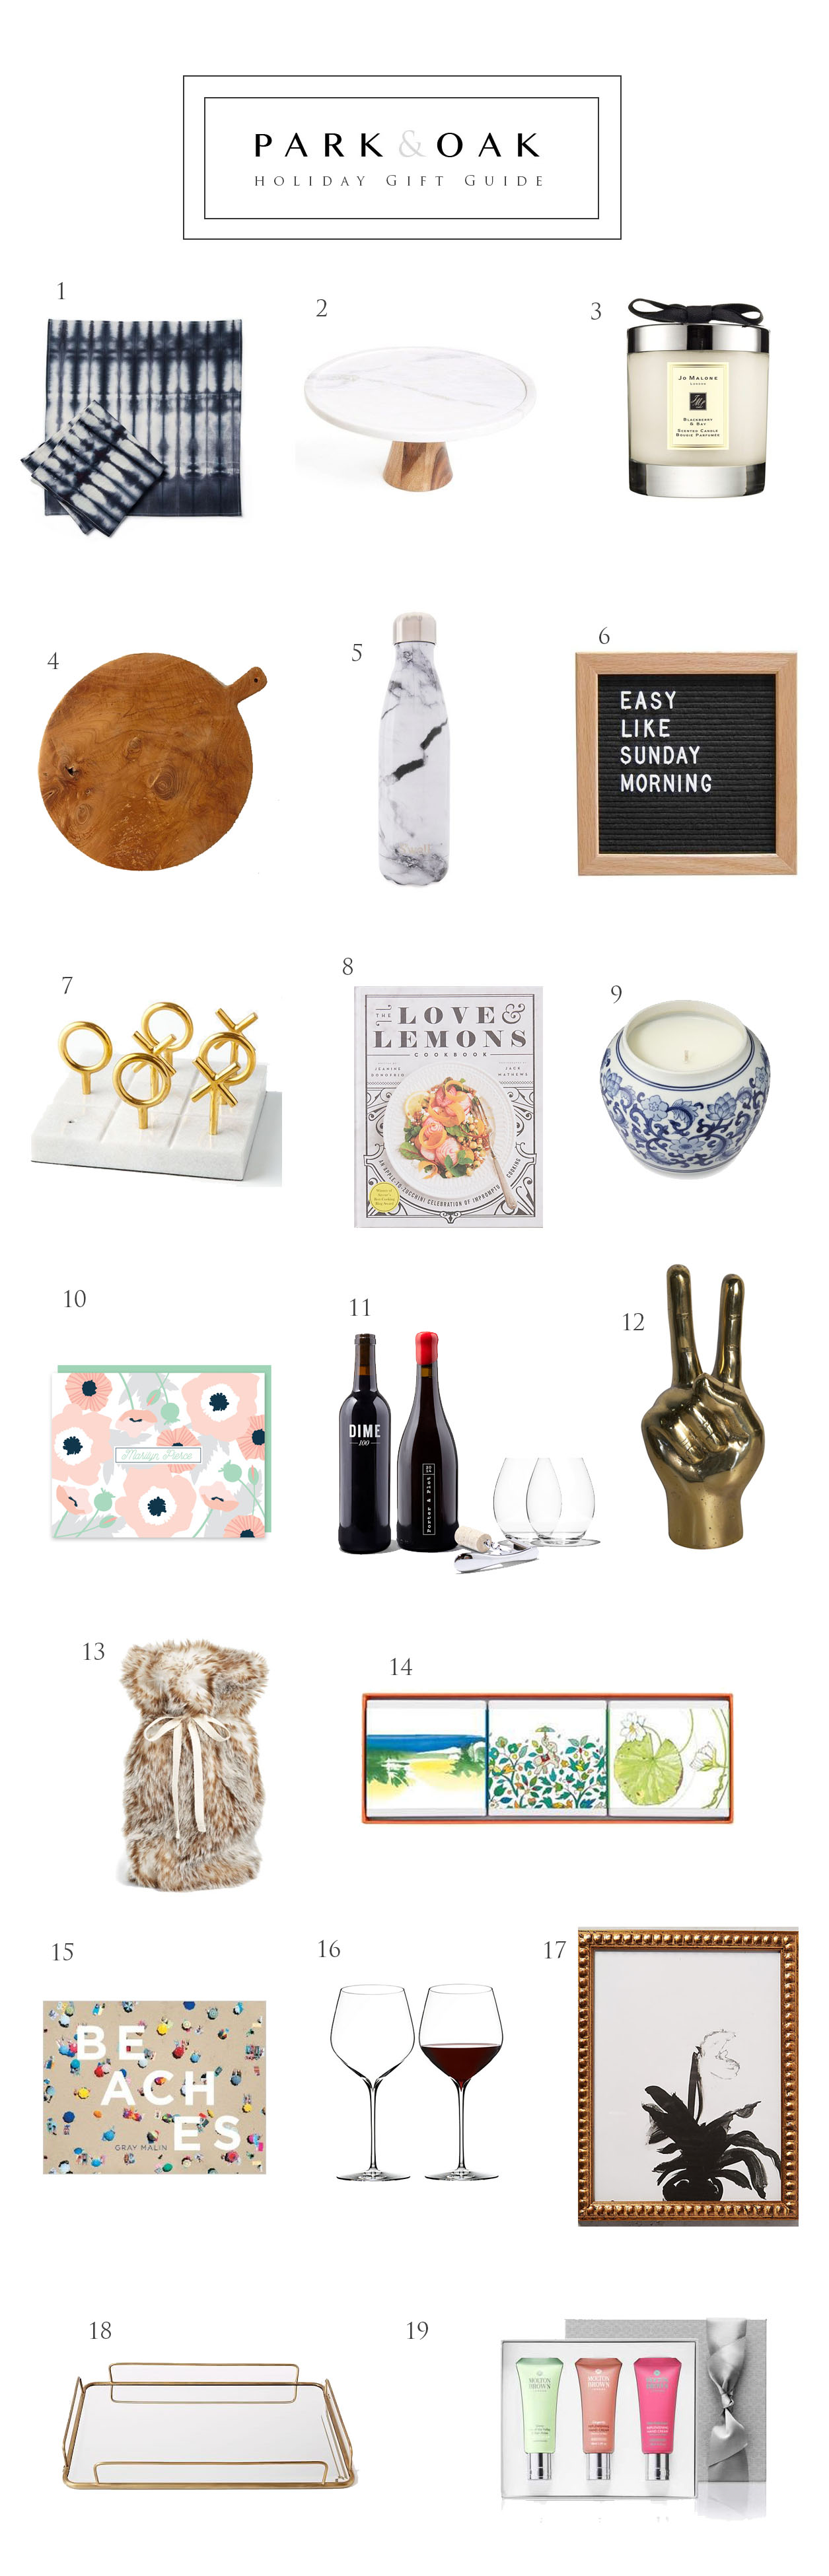 Park and Oak holiday gift guide 2016